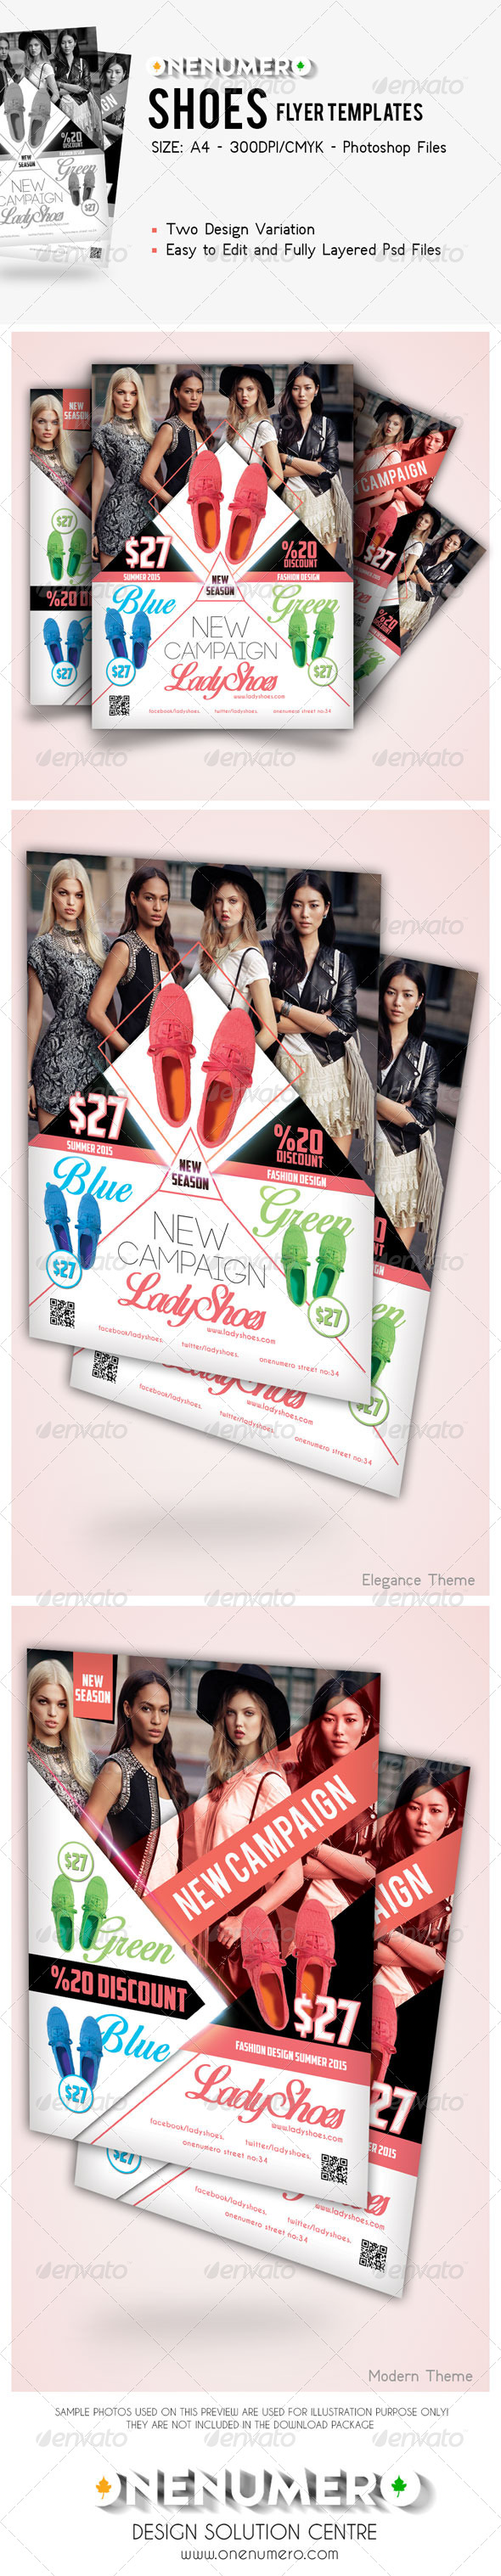 GraphicRiver Shoes Flyer Templates 7827339